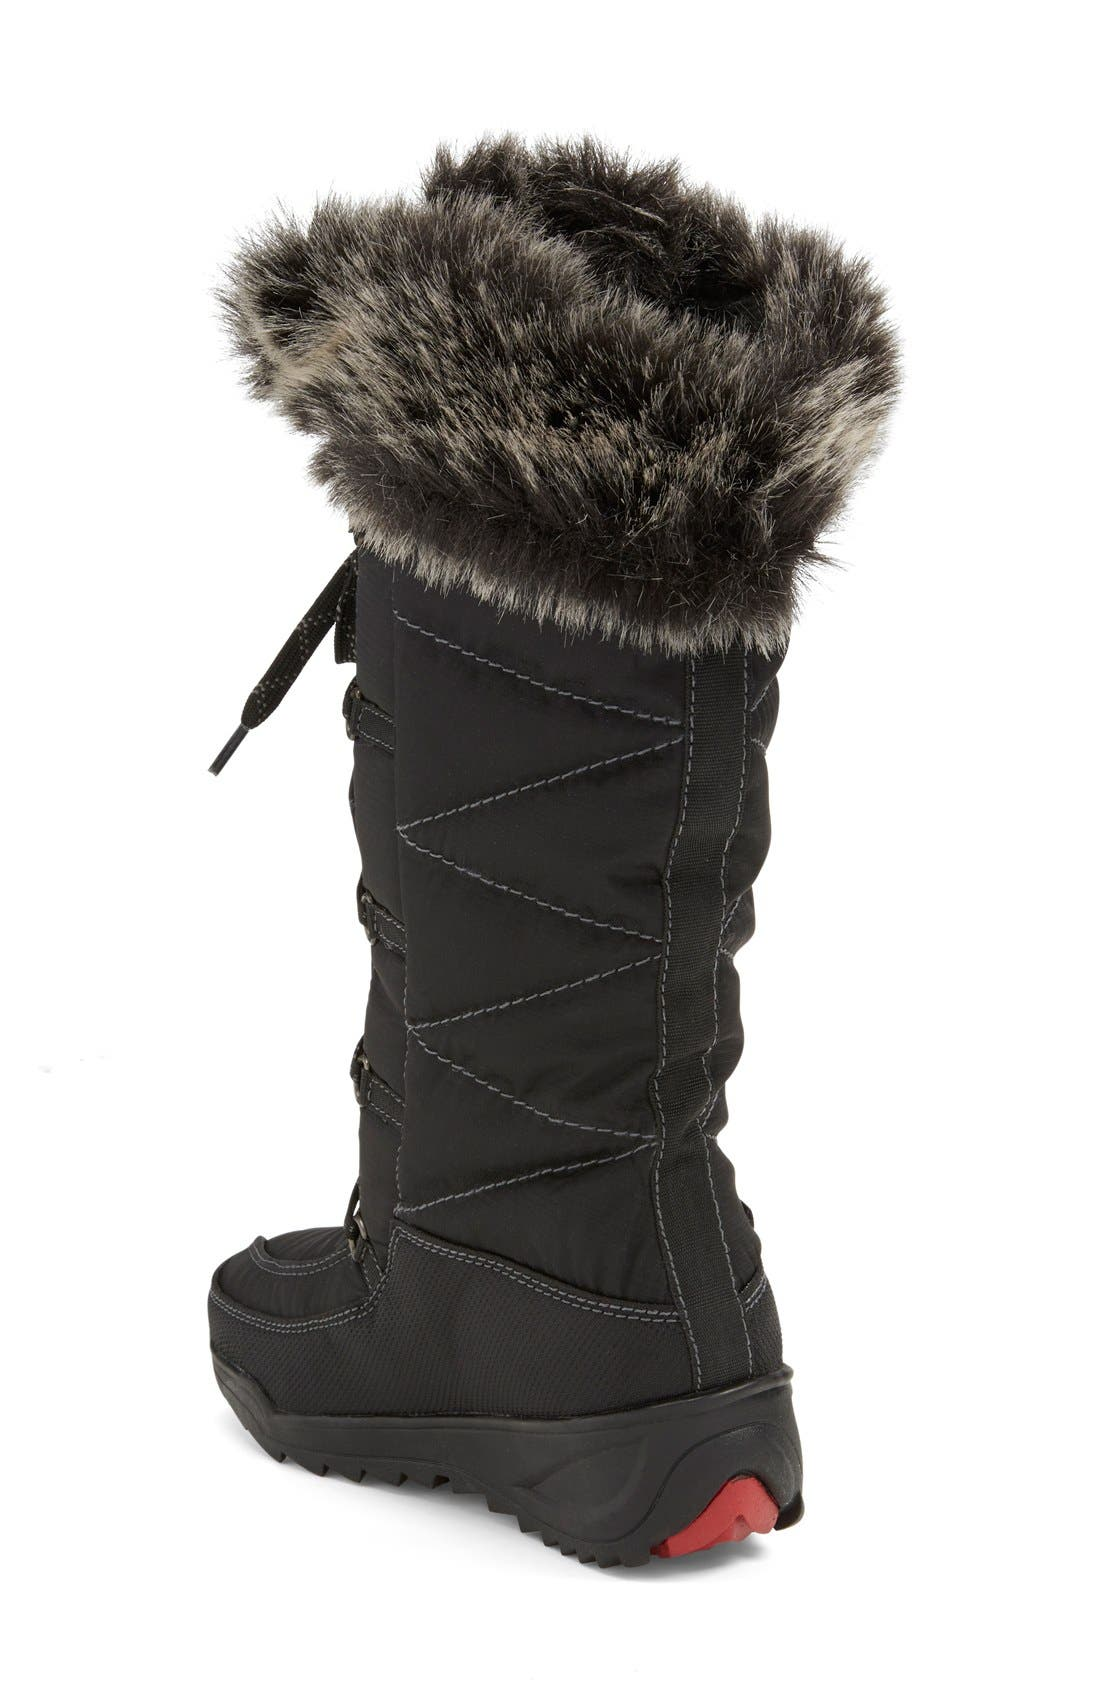 Alternate Image 2  - Kamik 'Porto' Waterproof Winter Boot (Women)